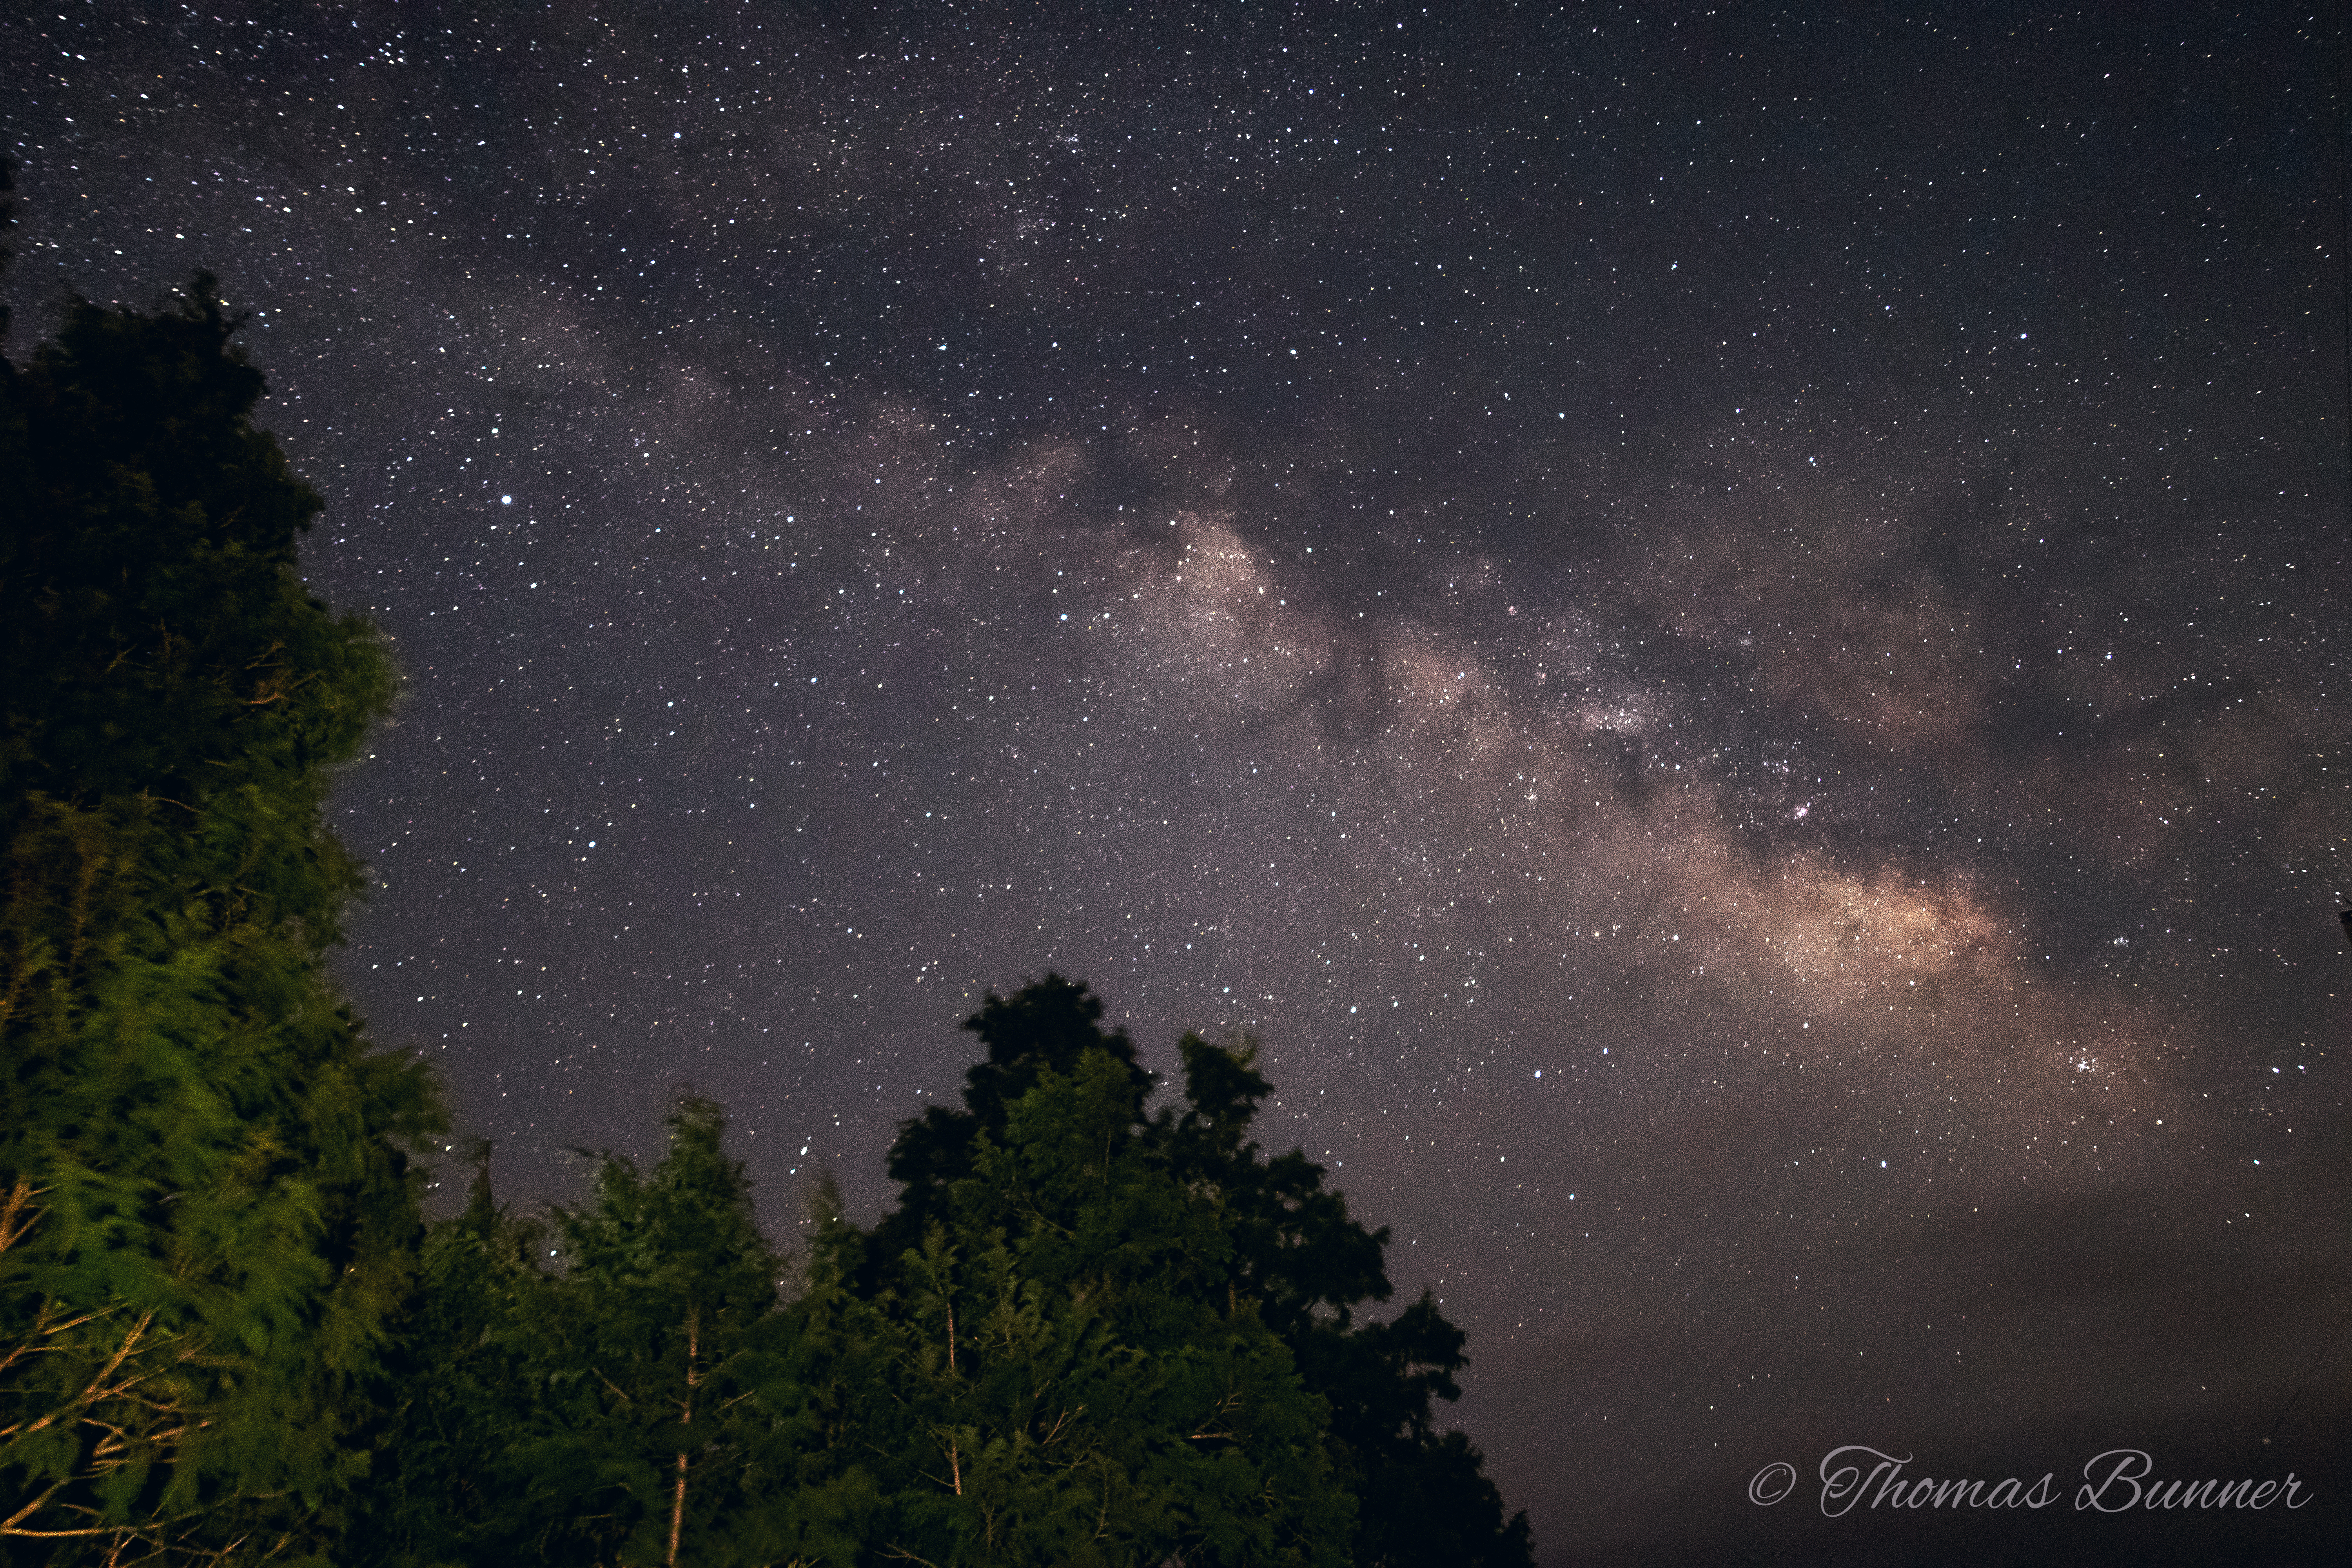 Milky way w- cedars watermarked